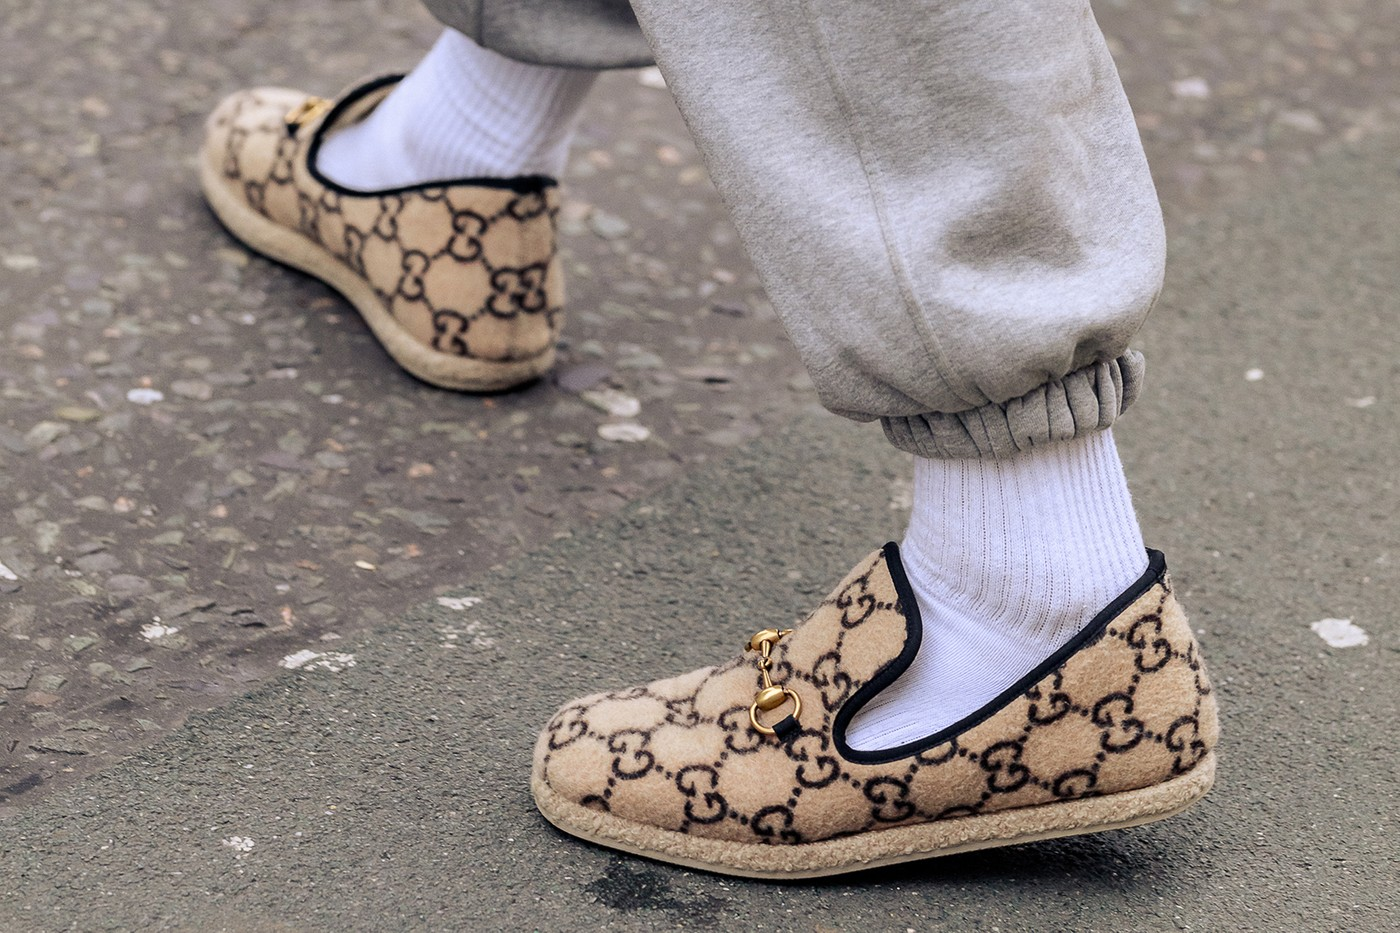 gucci-street-style-shoes-spotted-at-the-london-fashion-week-aw20-mens-event